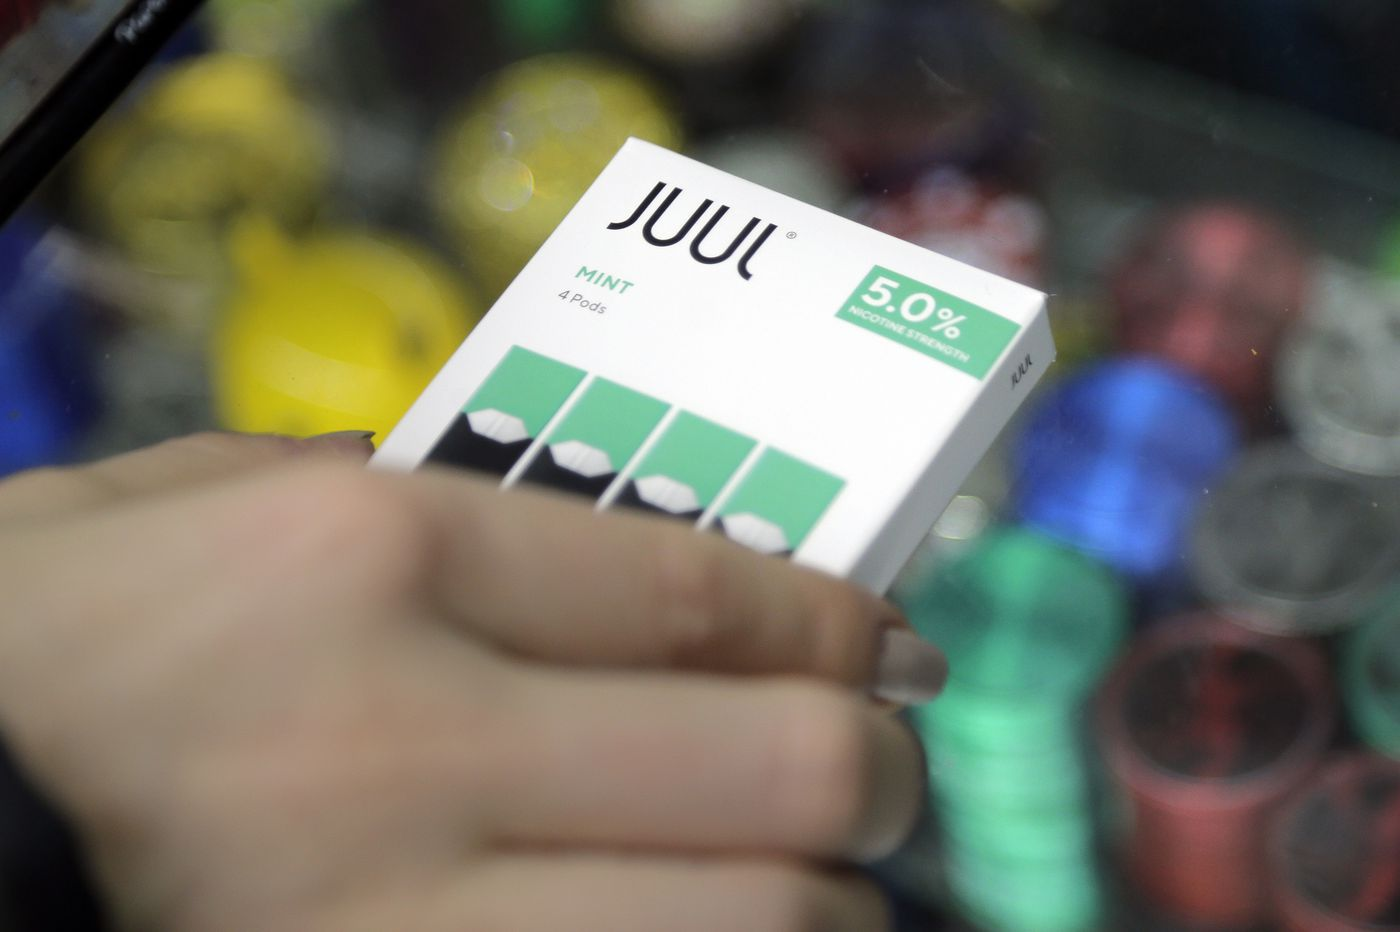 Juul to cut 650 jobs, slash $1 billion in spending as restructuring continues